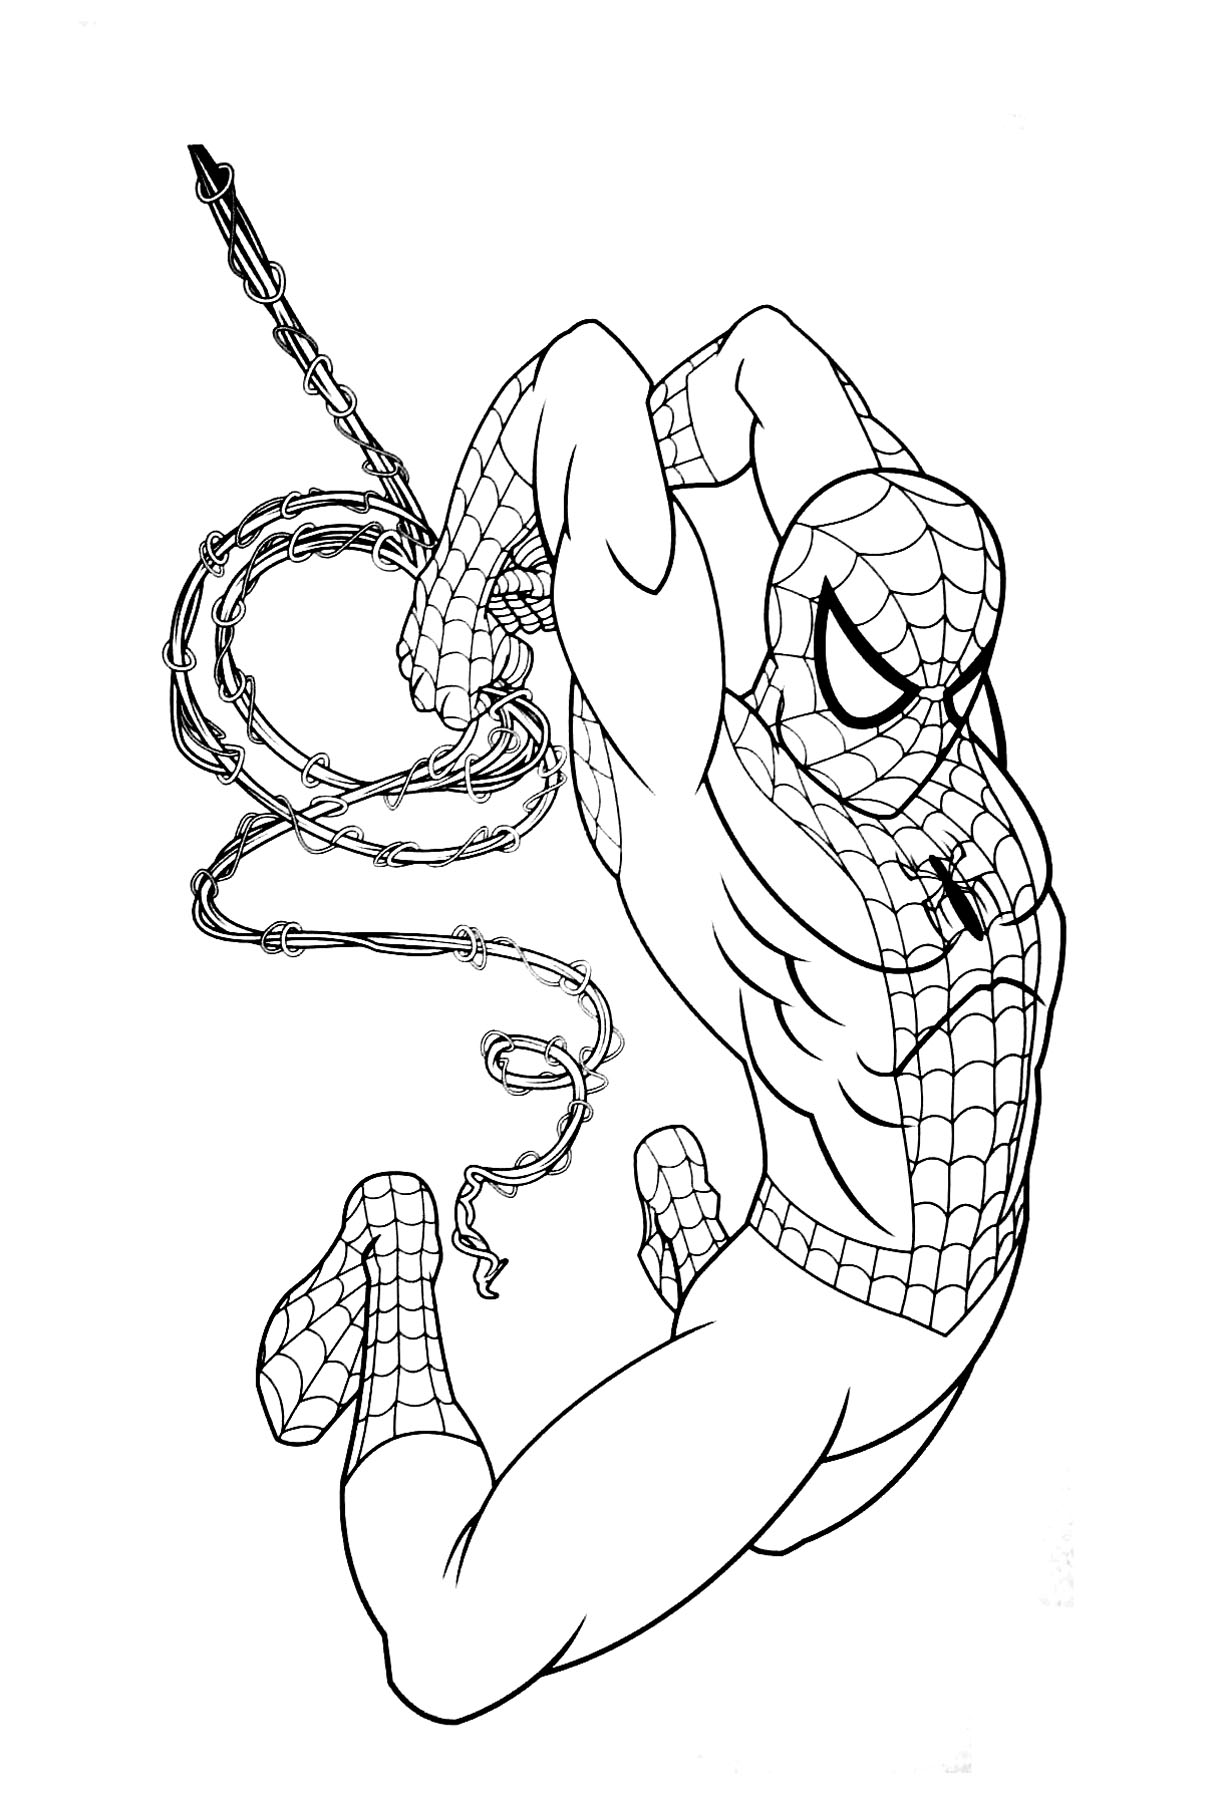 Spiderman gratuit 12 coloriage spiderman coloriages - Dessin de heros ...